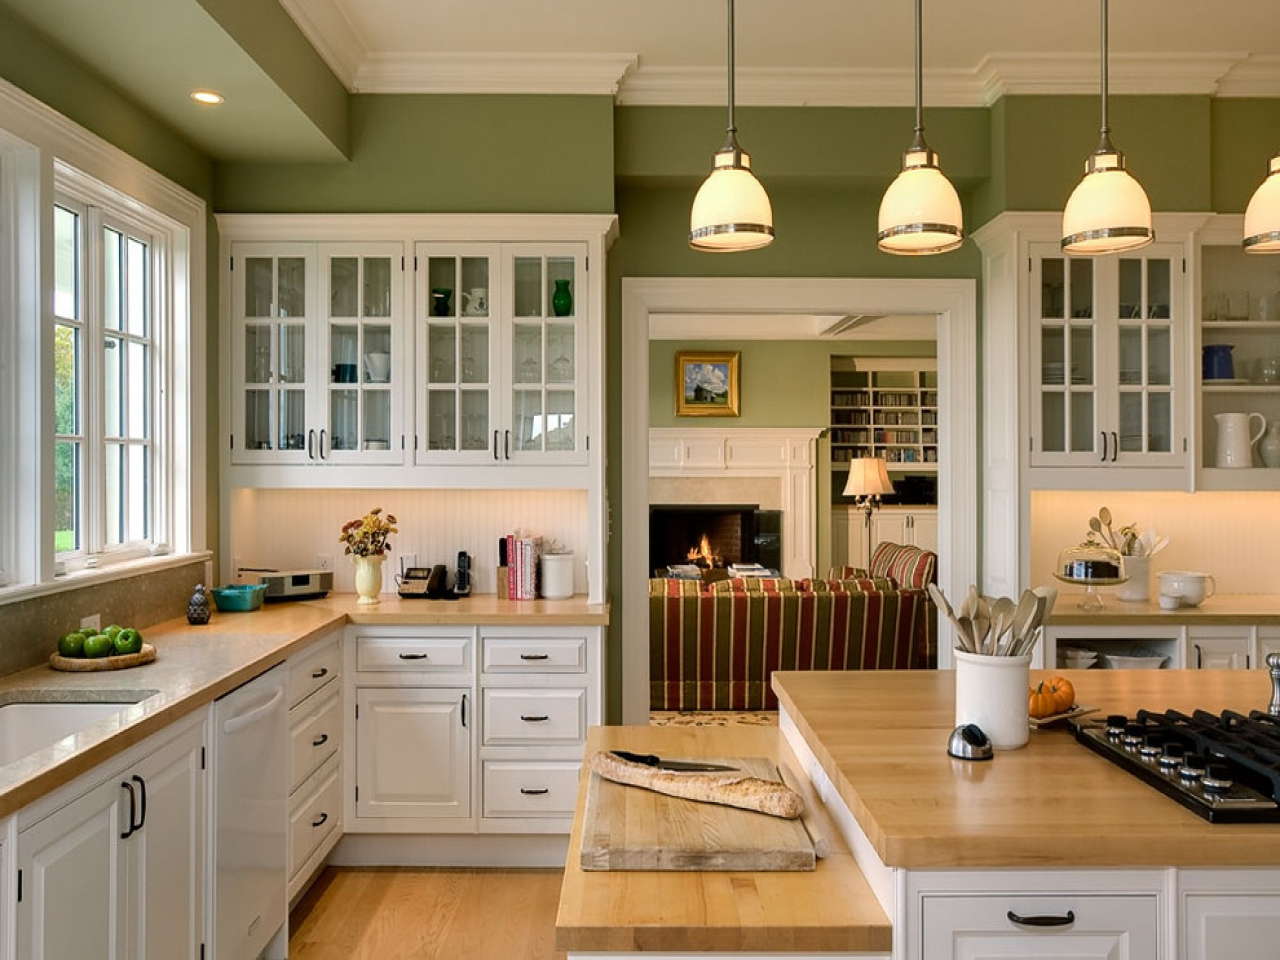 Painted walls – country style kitchen design ideas